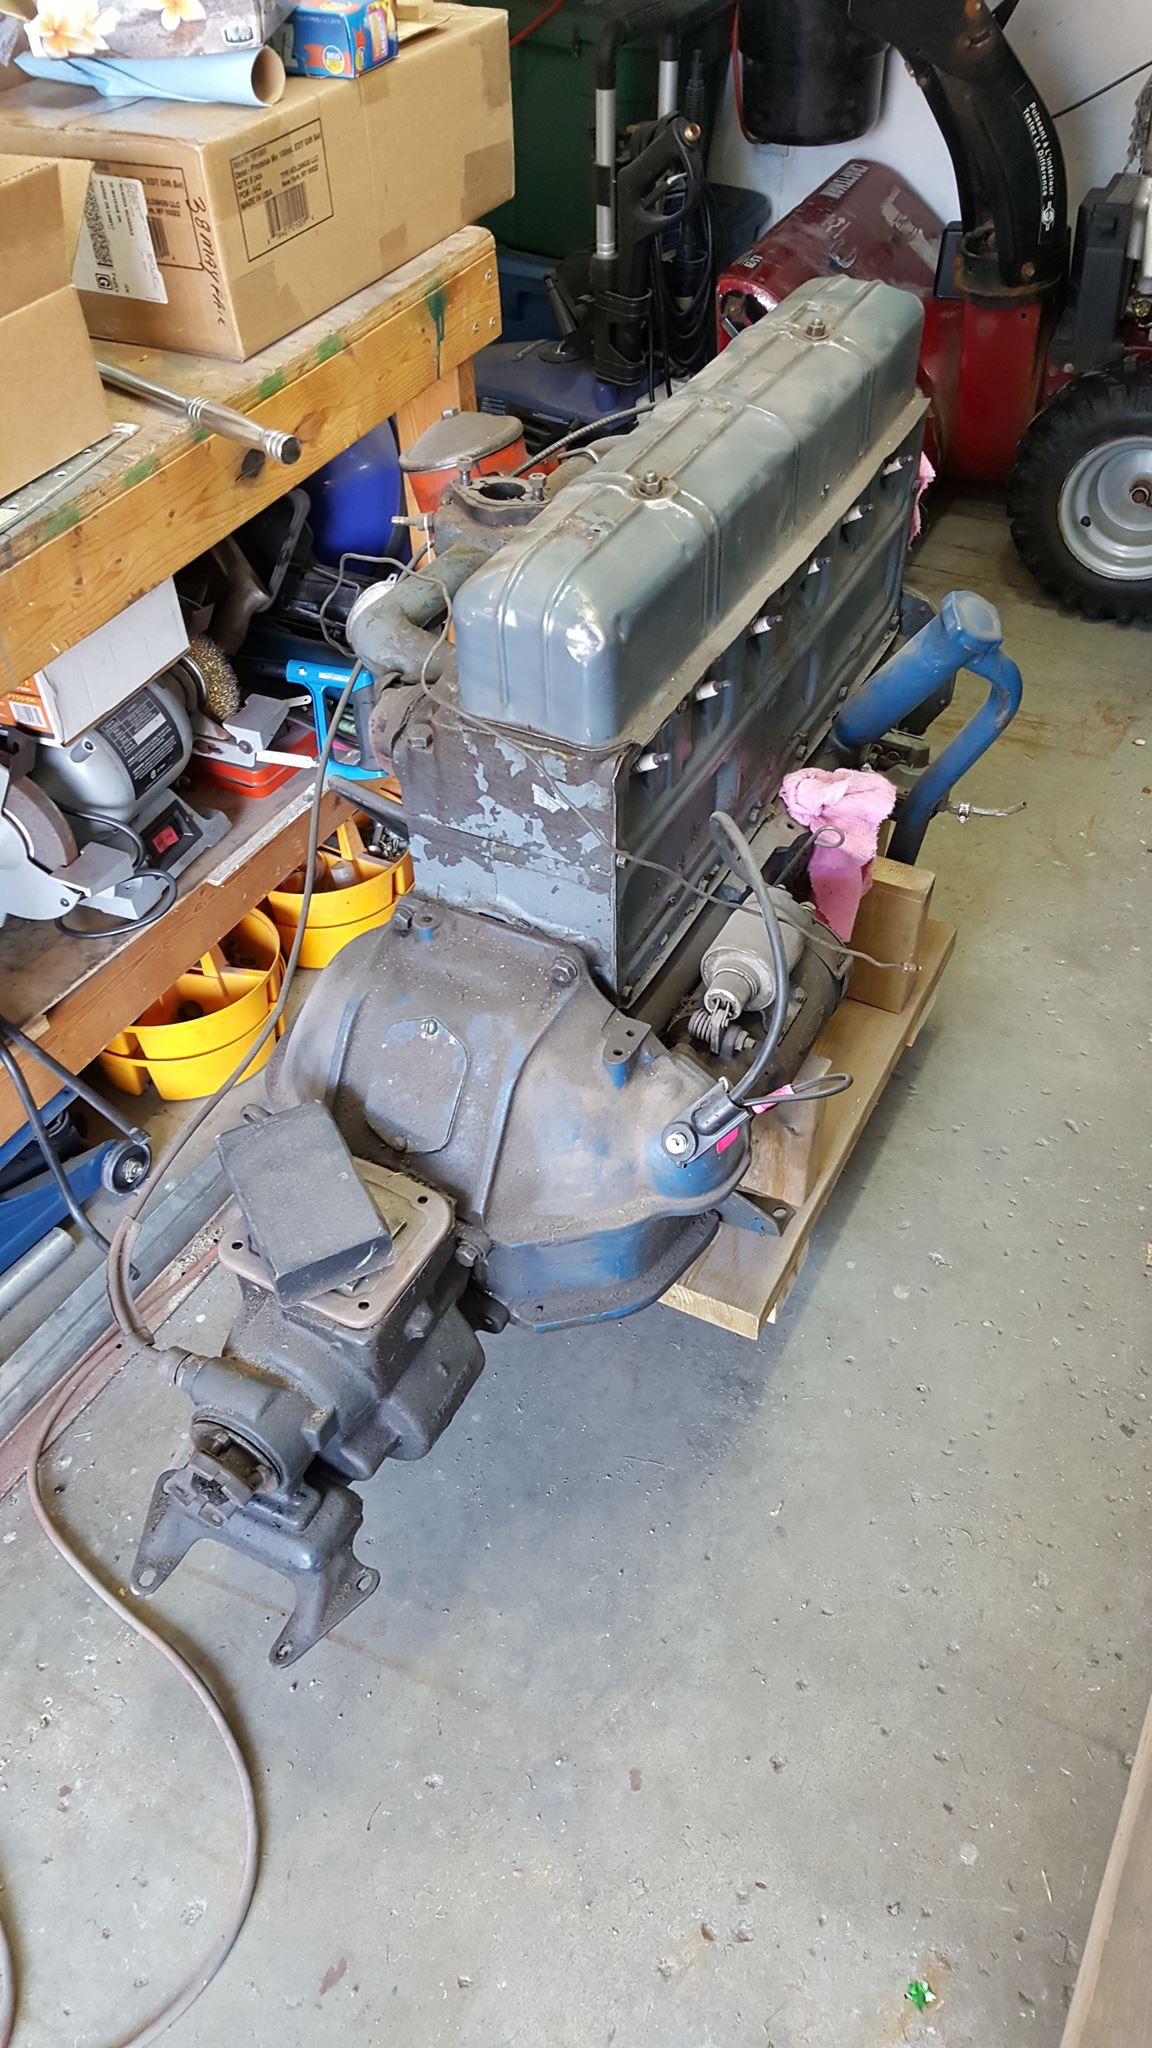 Straight 6 GM 235 Chevy '54 engine help - Technical - Antique Automobile  Club of America - Discussion ForumsAACA Forums - Antique Automobile Club of America